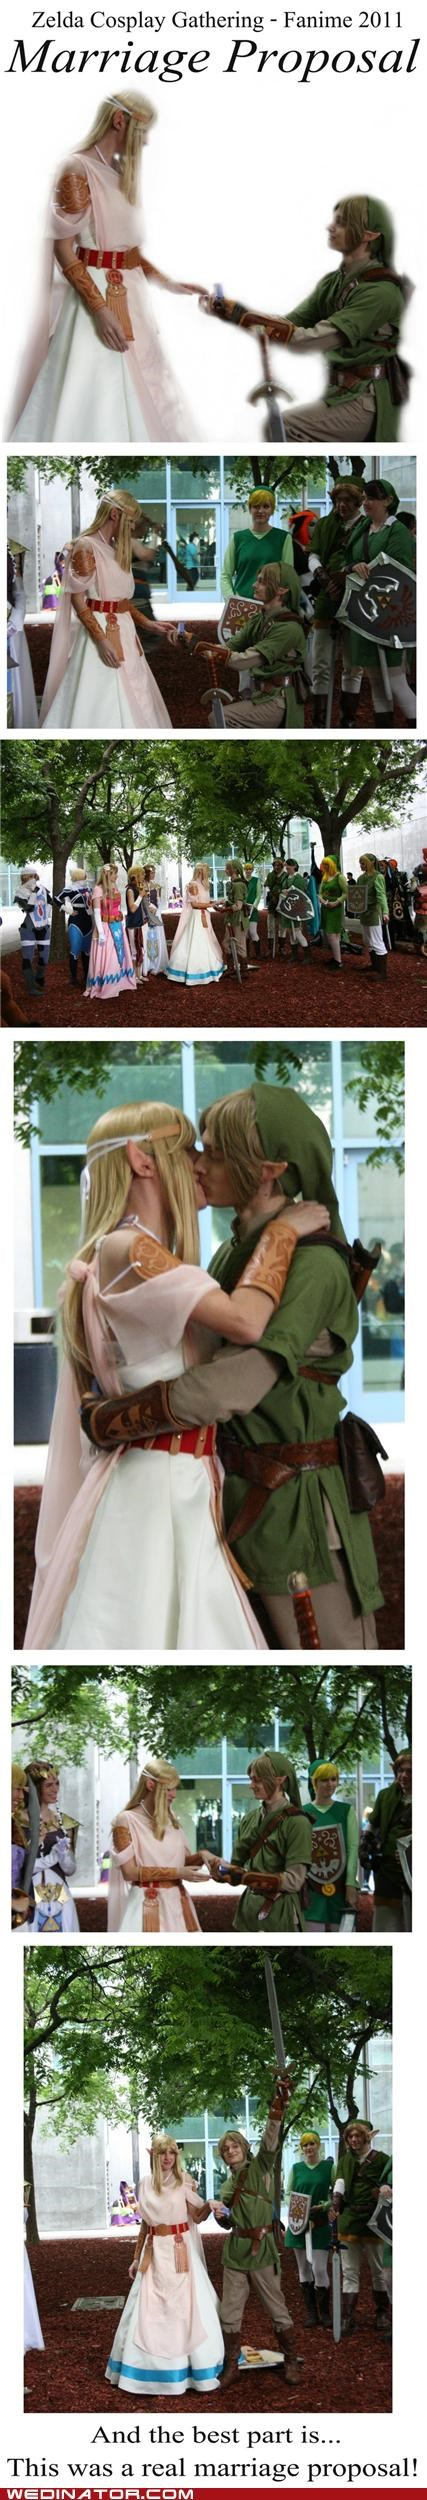 Link got the final piece of heart